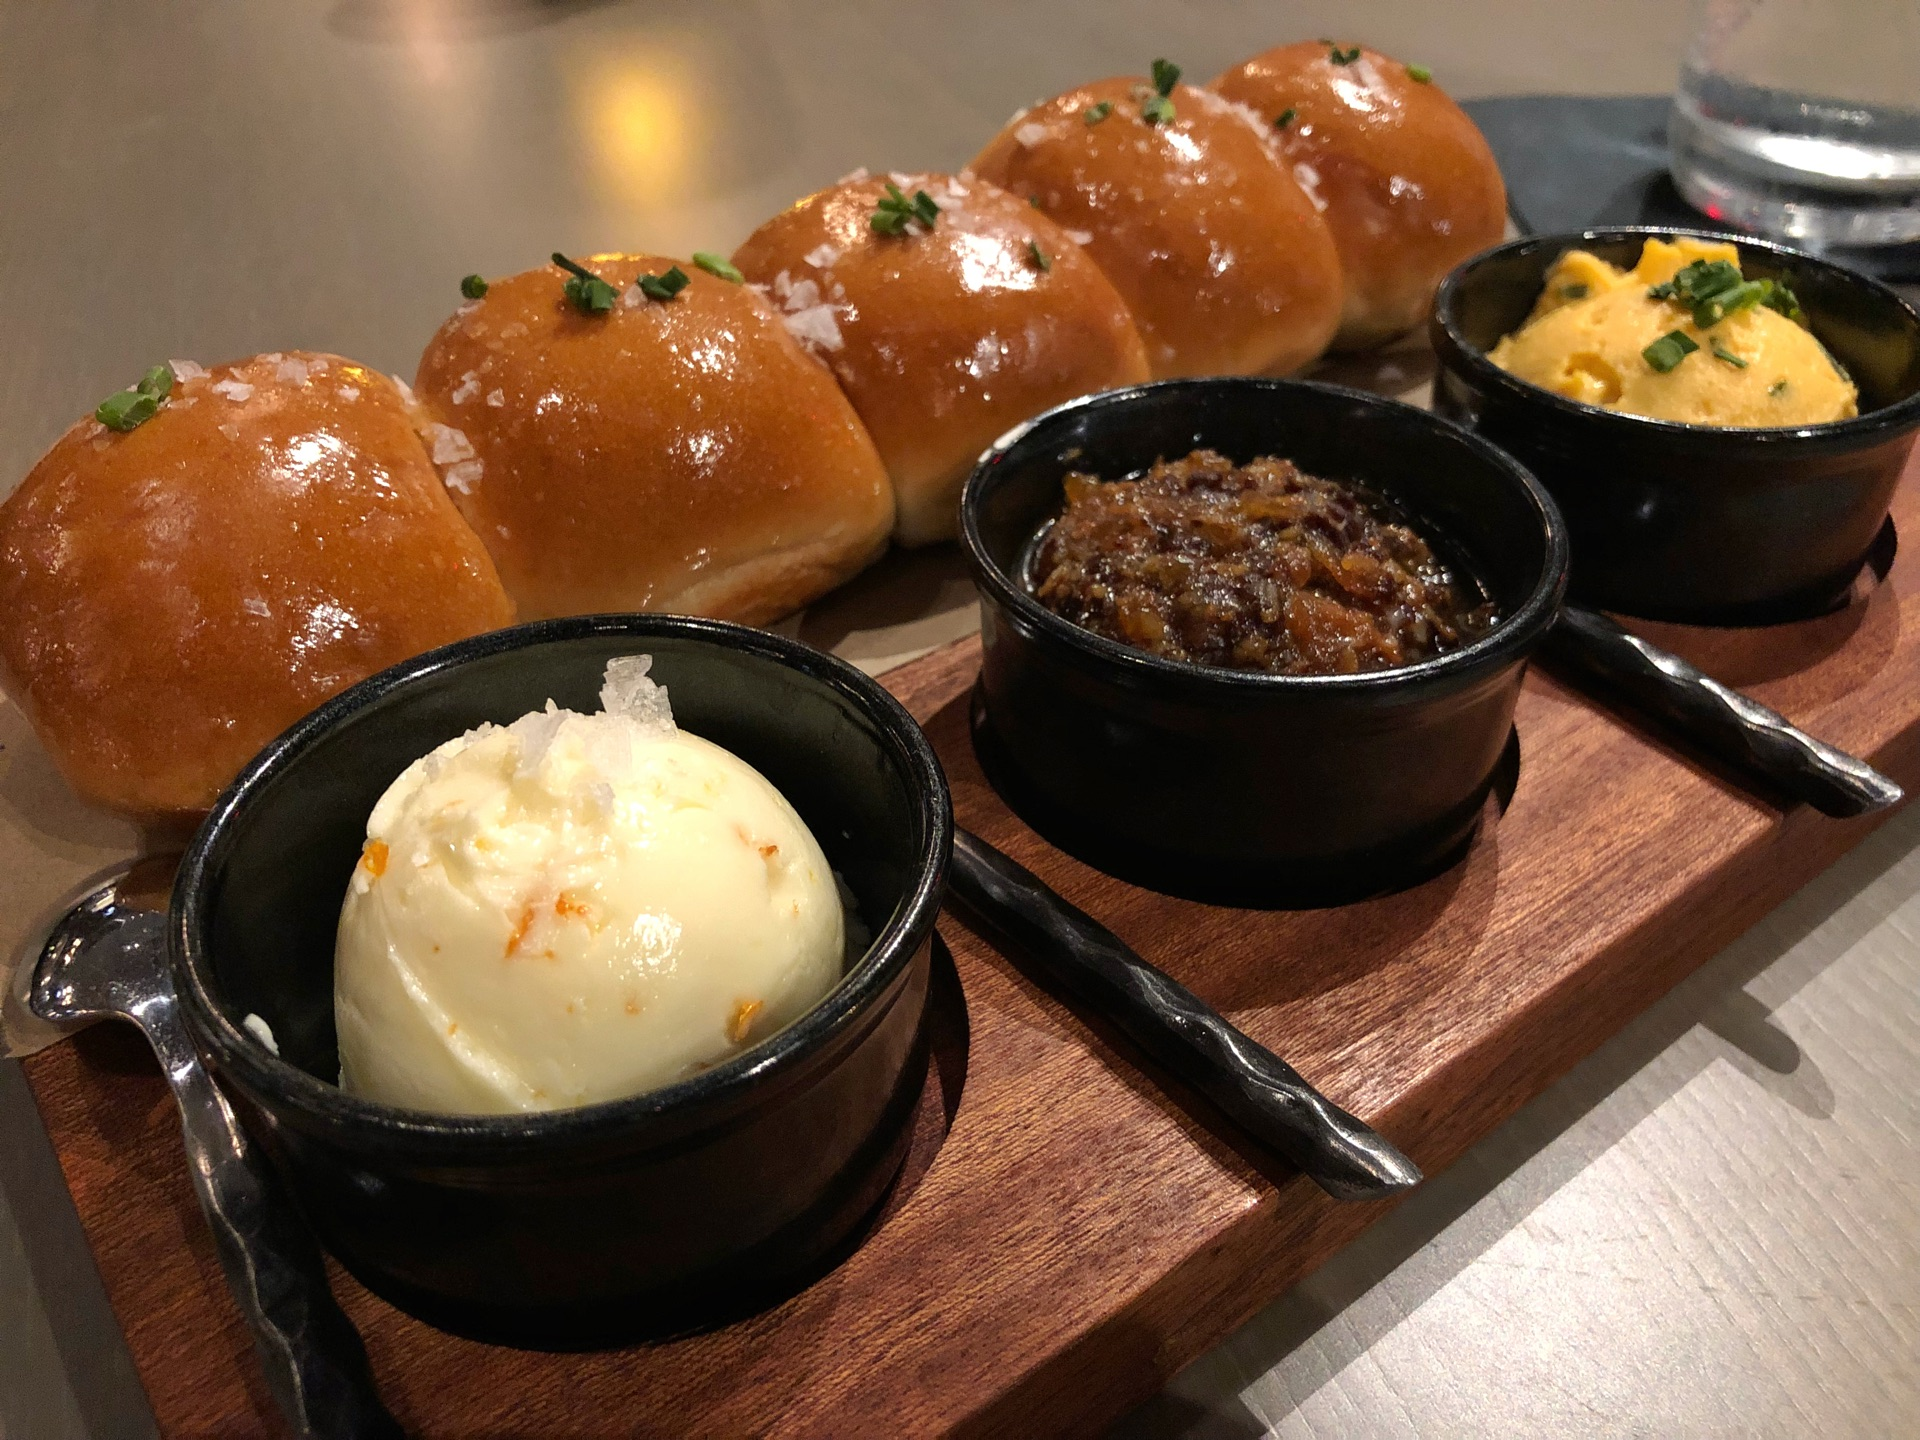 Parkerhouse rolls with citrus butter, bacon jam, and pub cheese